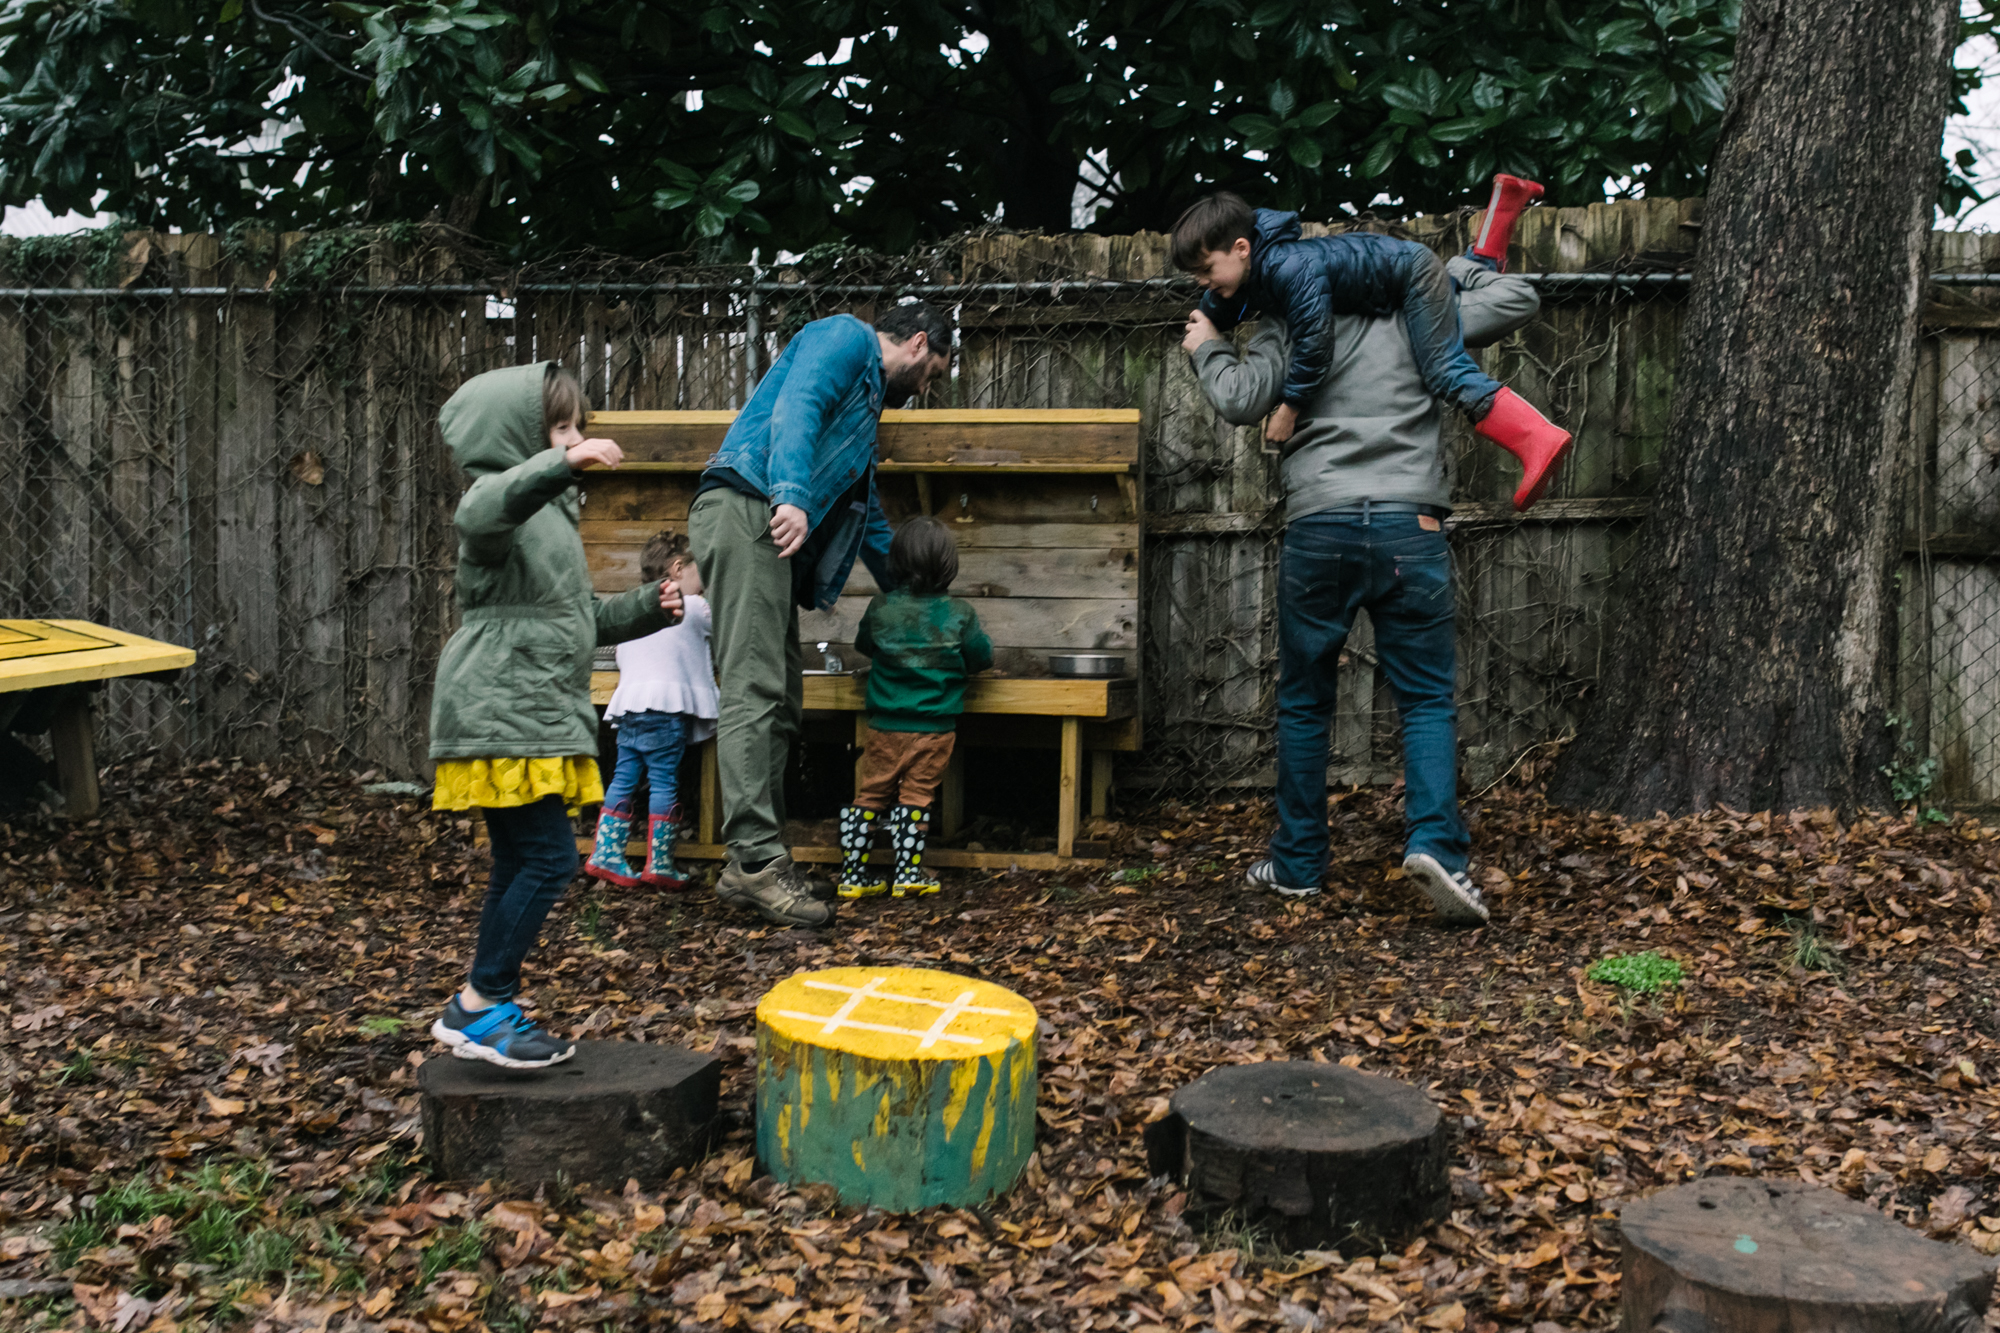 Children play at a play kitchen as a dad holds a boy across his shoulders